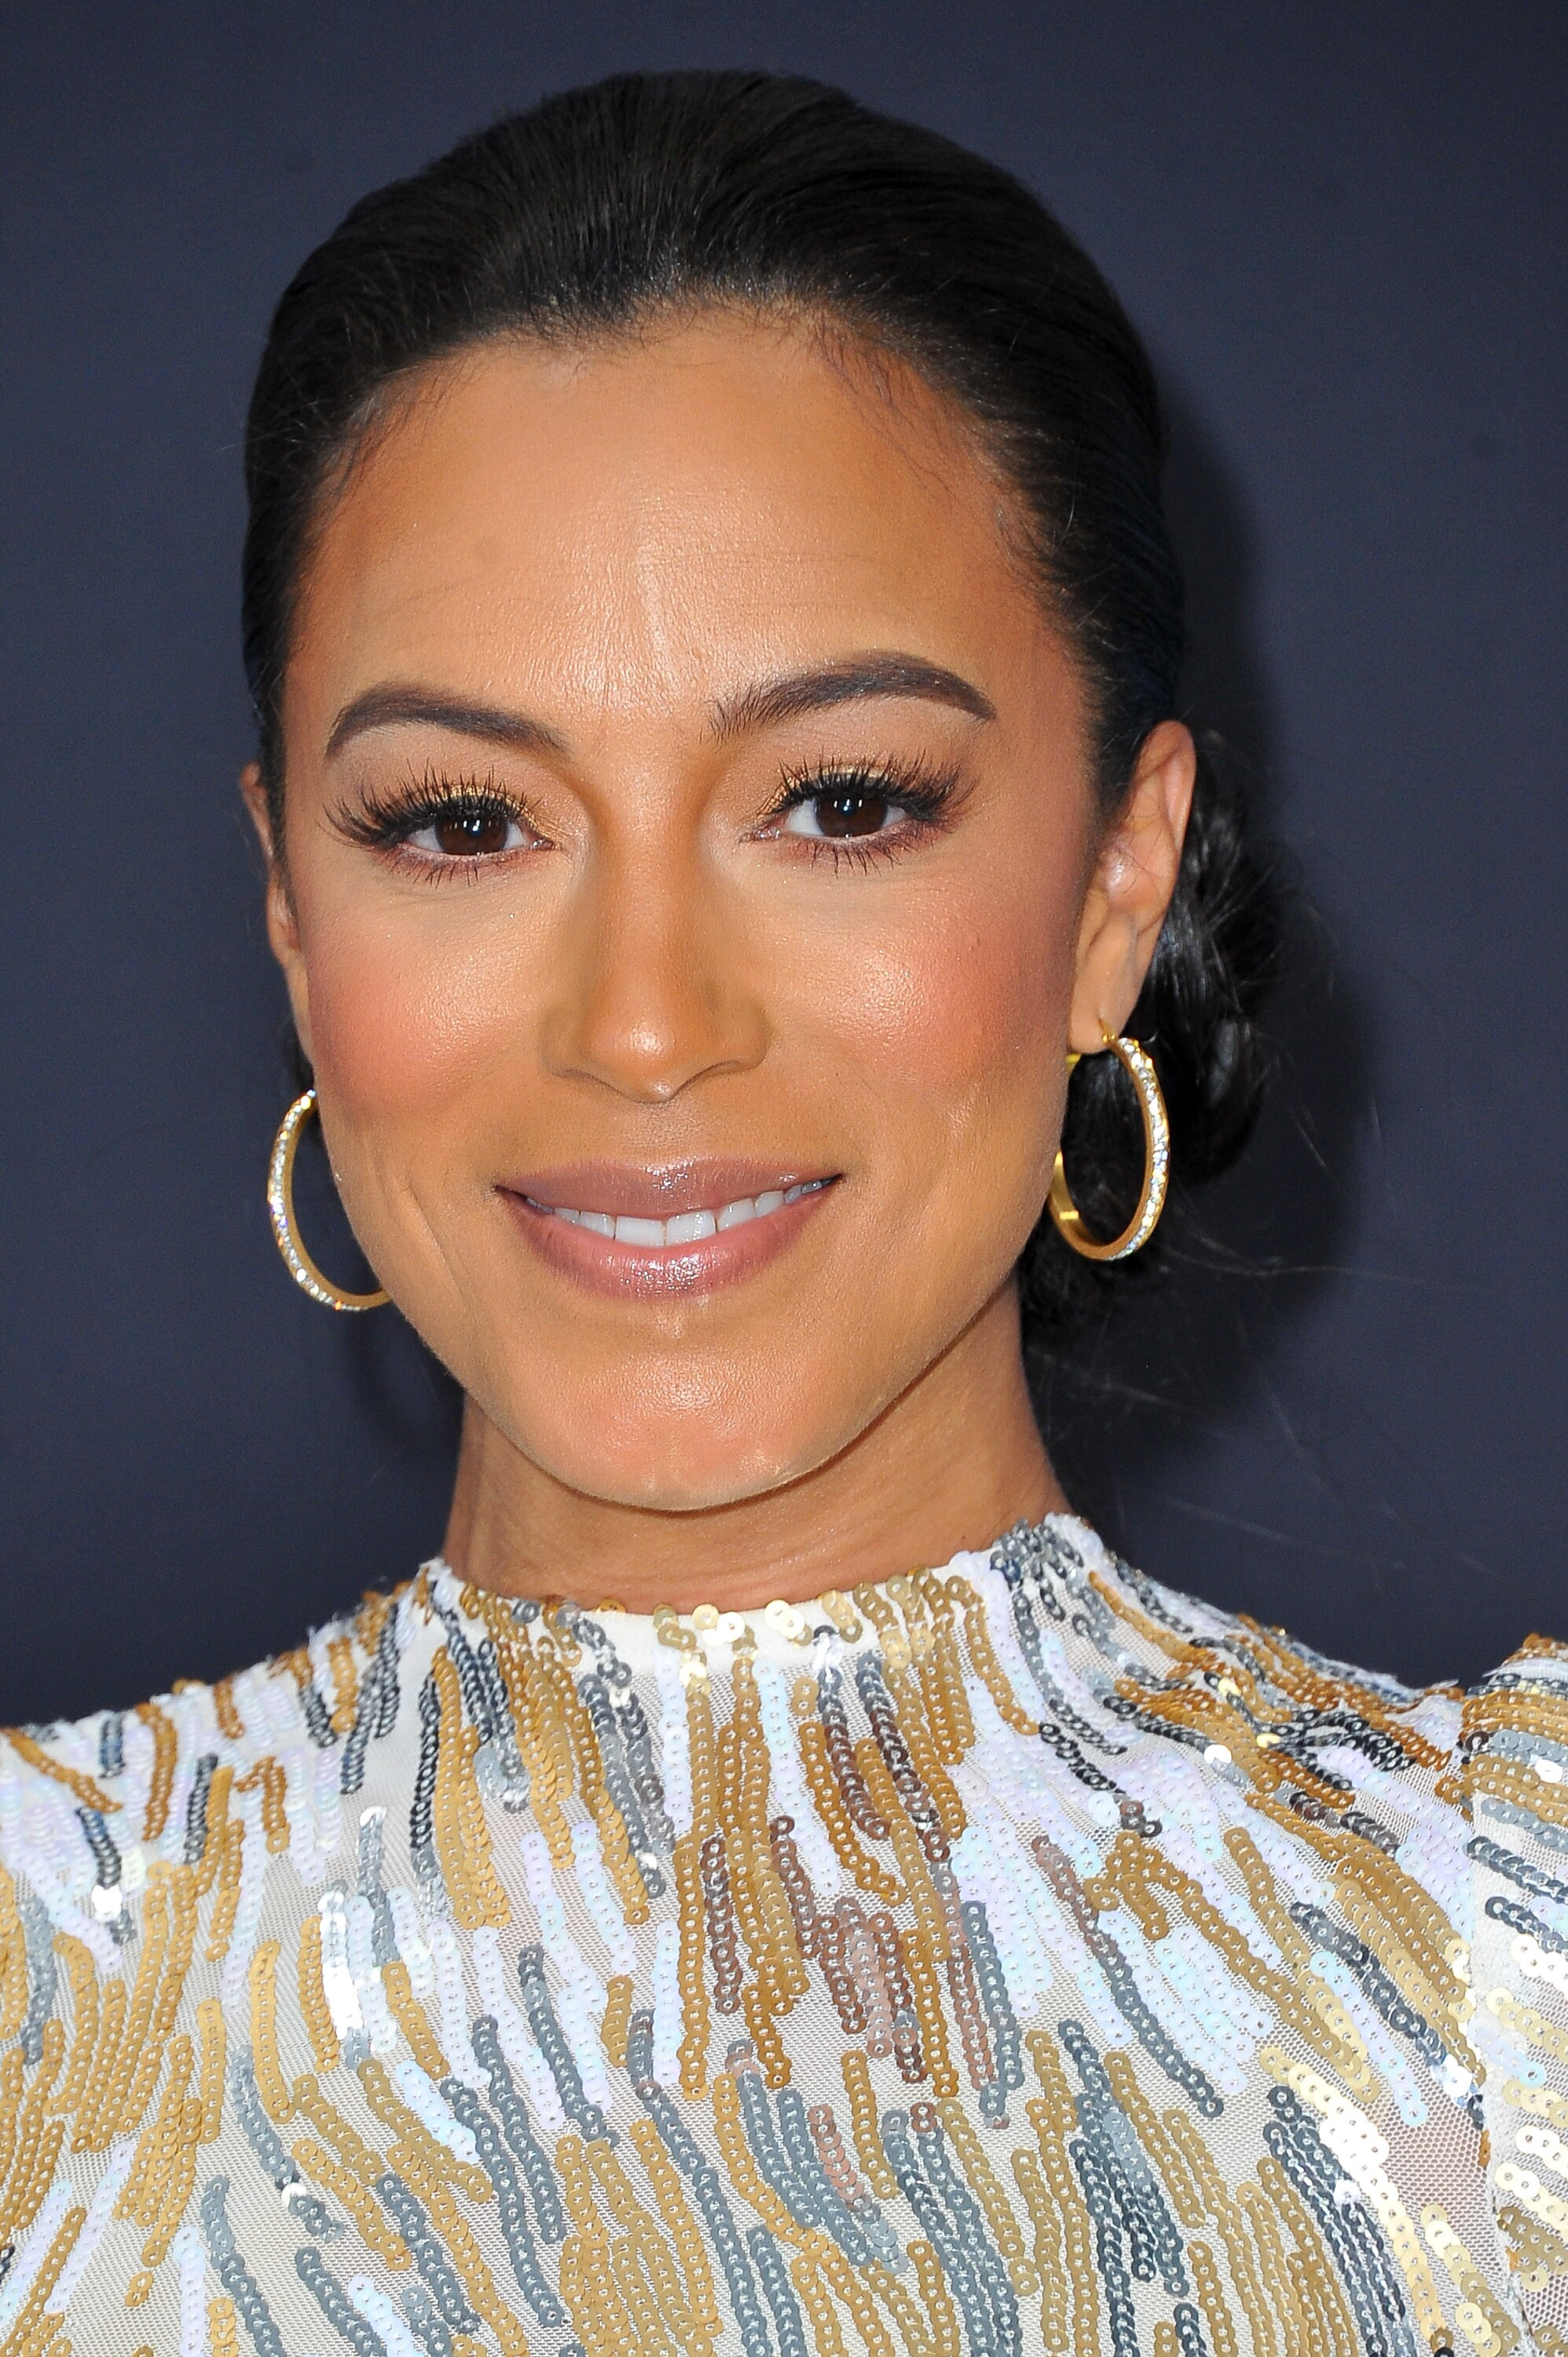 AARP, Sisters, Hoop Earrings, Angela Rye